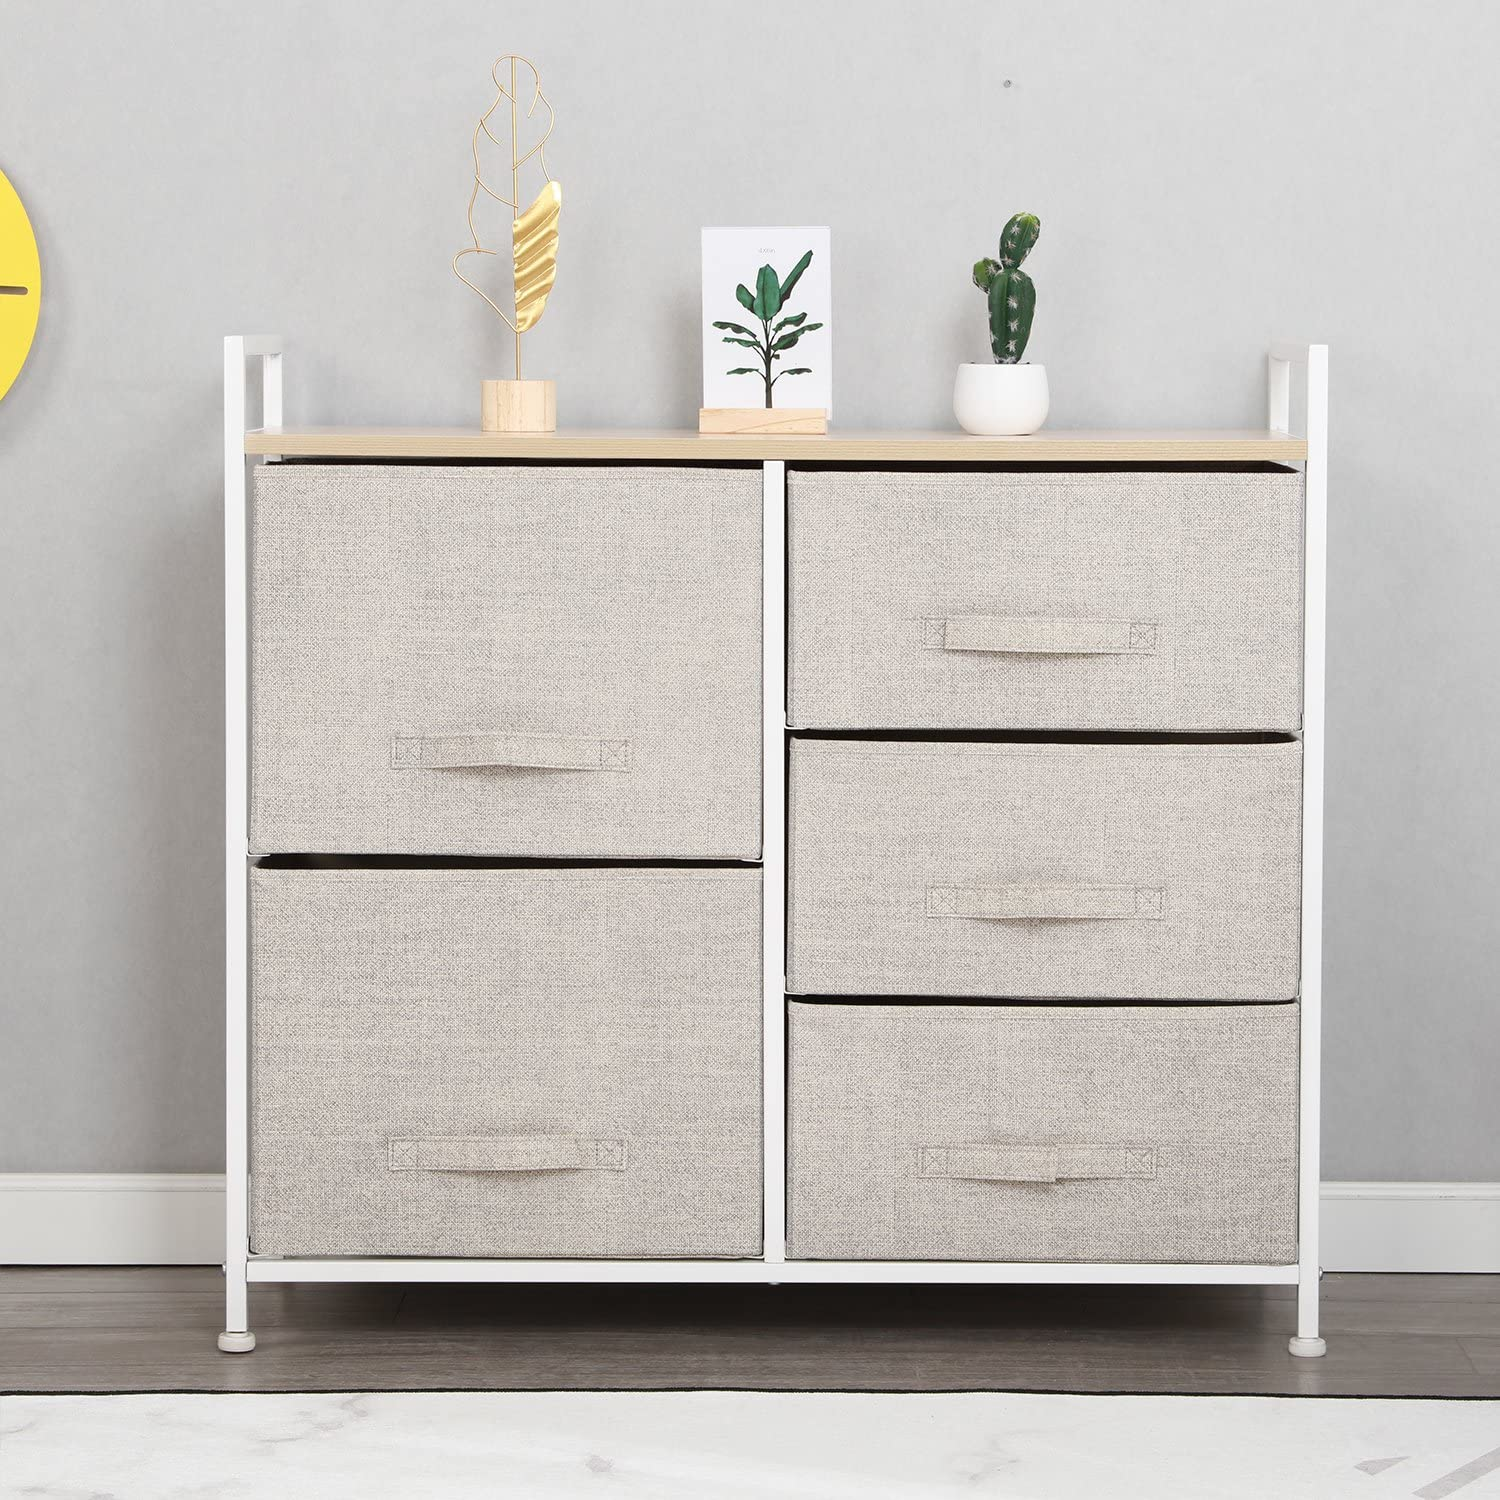 Soges Fabric 5-Drawer Storage Organizer Unit for Bedroom, or Play Room with  Fabric Bin Storage Unit,Beige 5-BM-CA